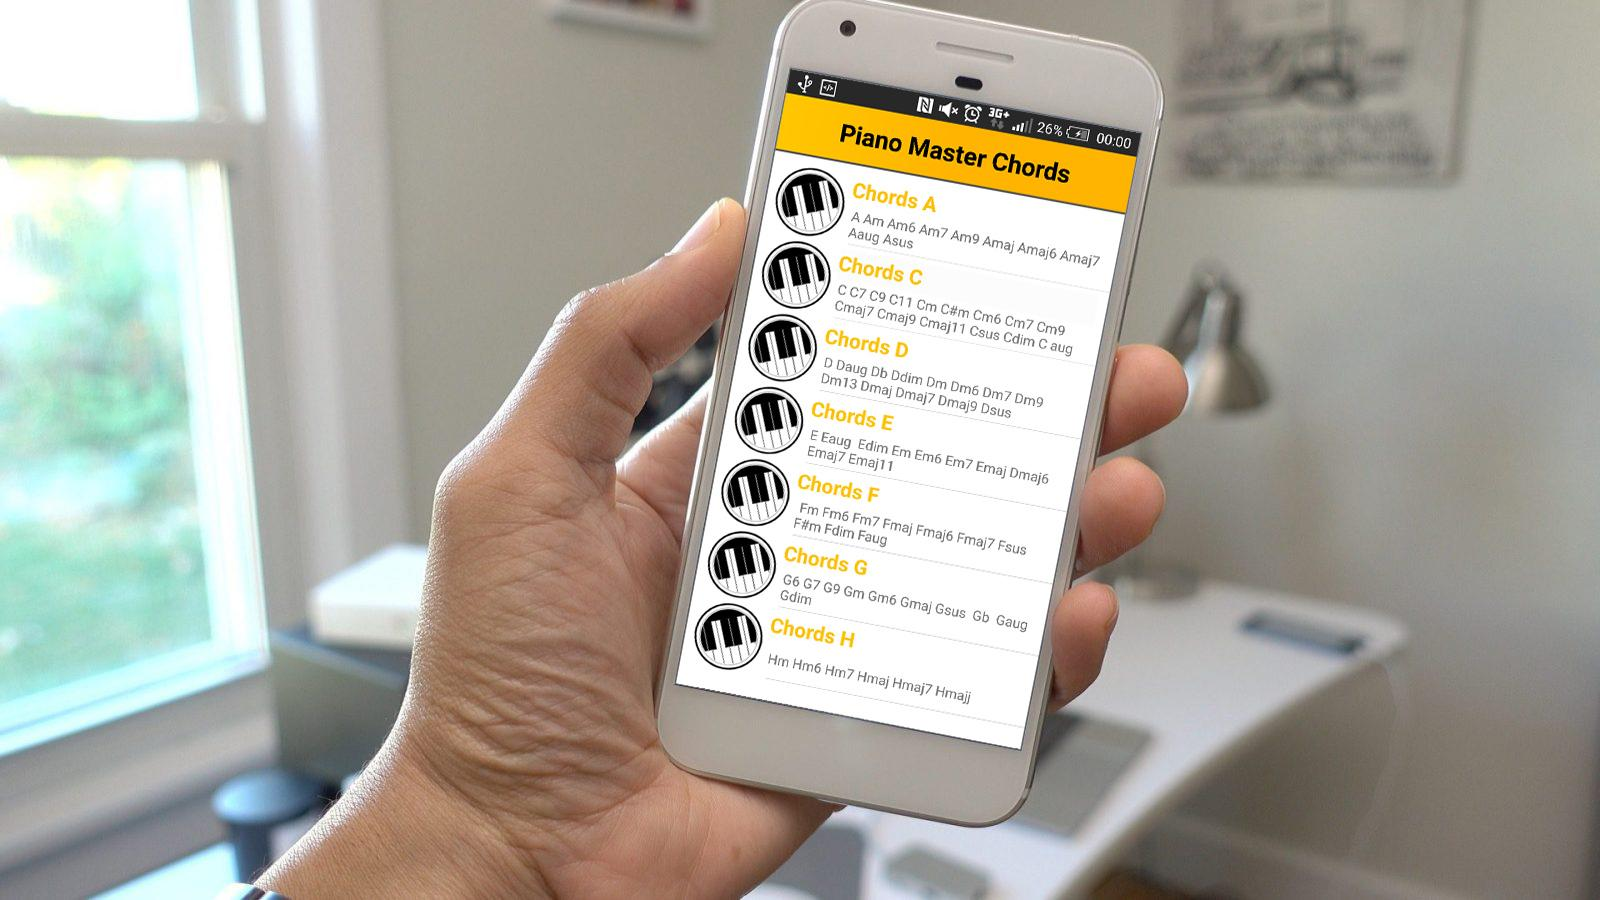 Piano master chords android apps on google play piano master chords screenshot hexwebz Image collections